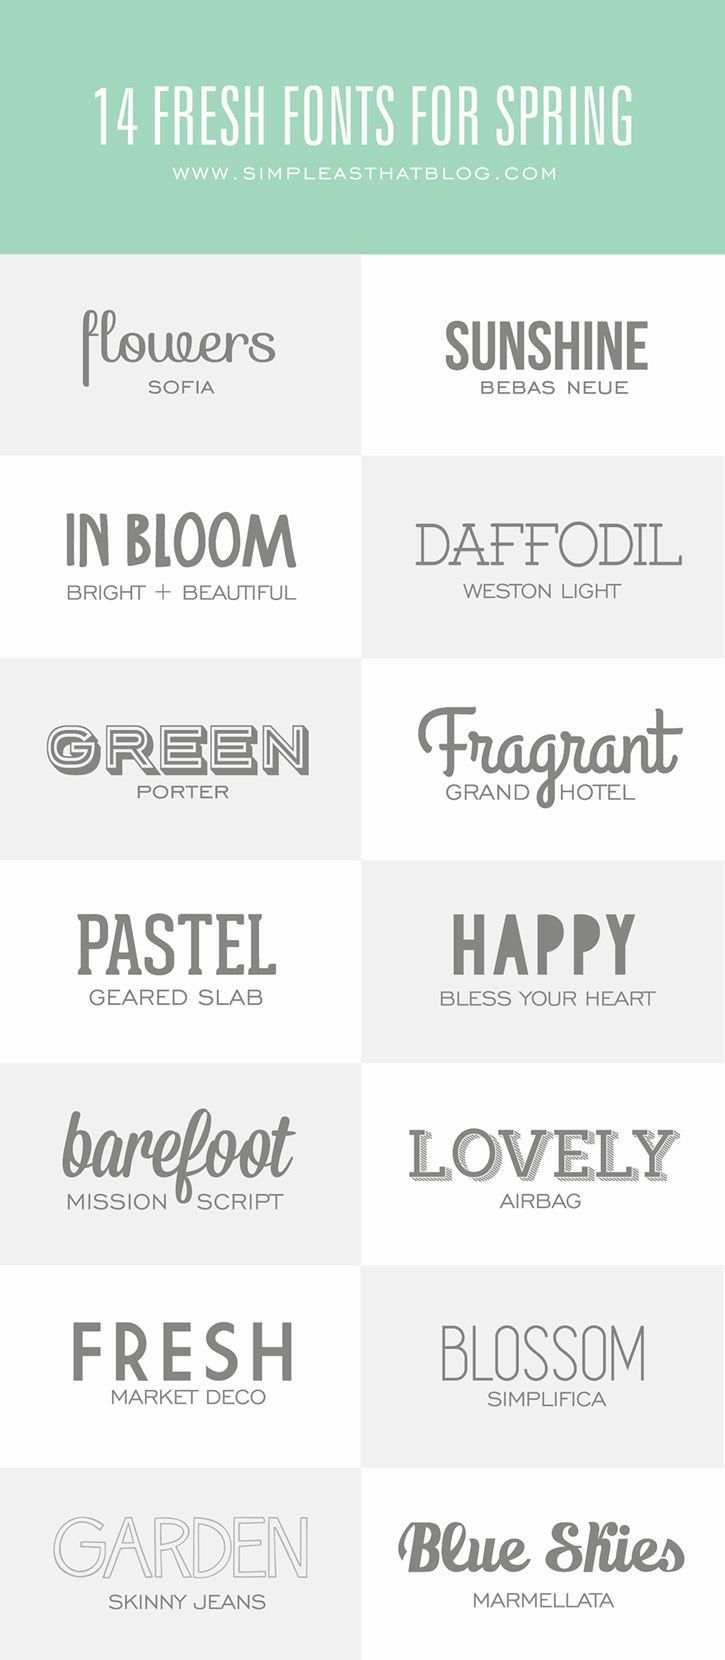 These are 14 fresh fonts that I think are particularly visually appealing. The bolder fonts are the ones I would consider using in my logo work.